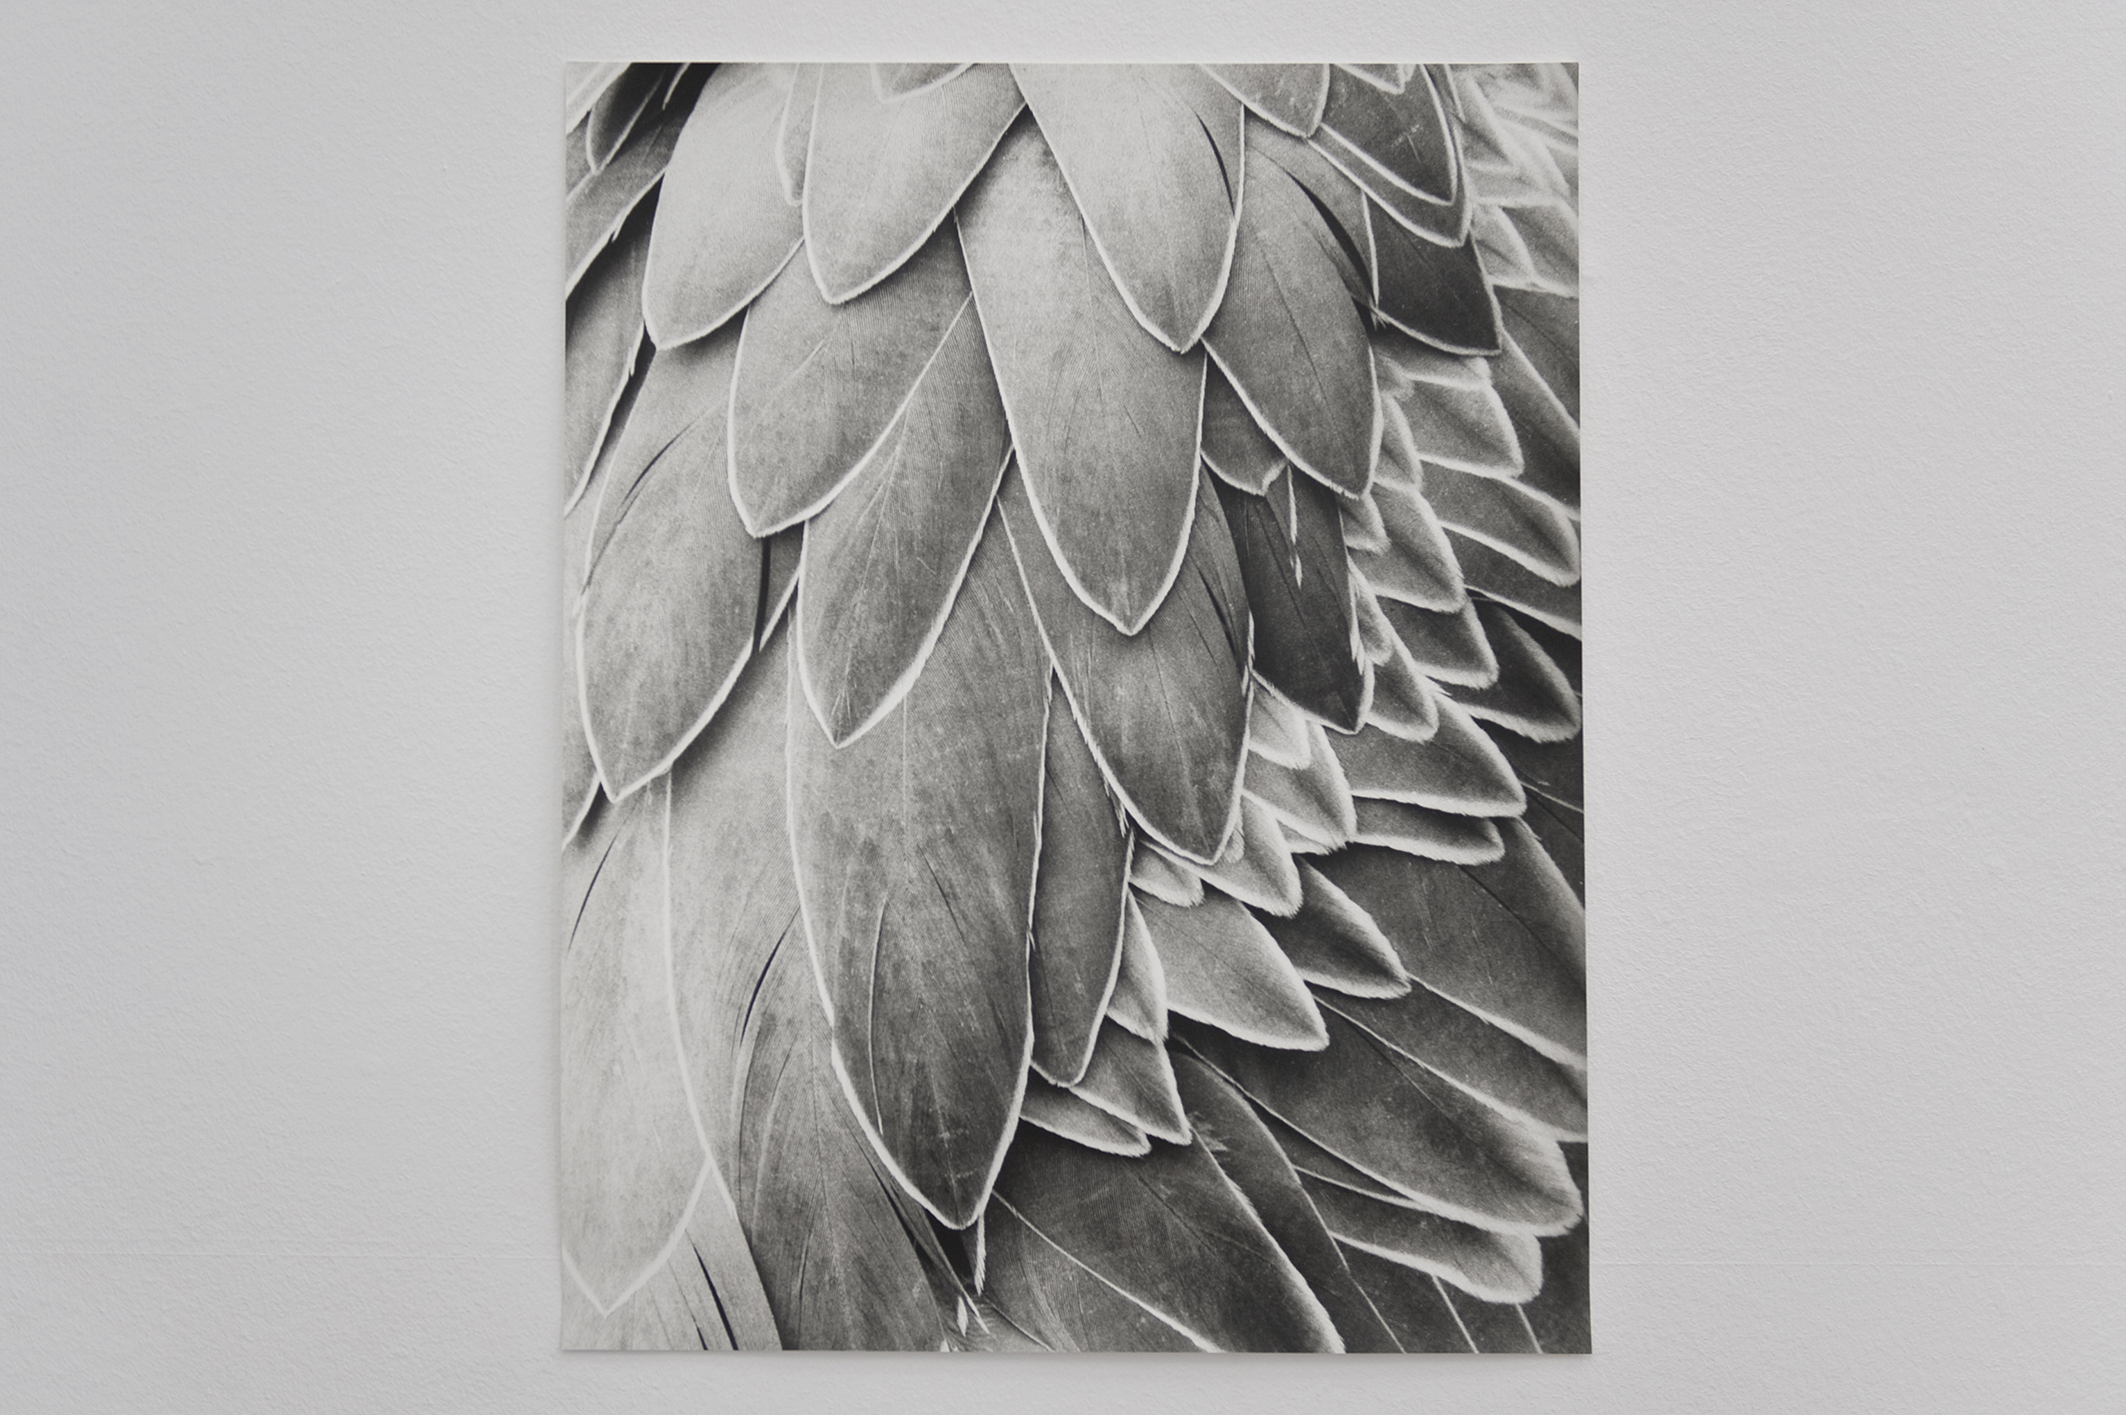 Untitled (Feathers), 2014 | Jochen Lempert | ProjecteSD